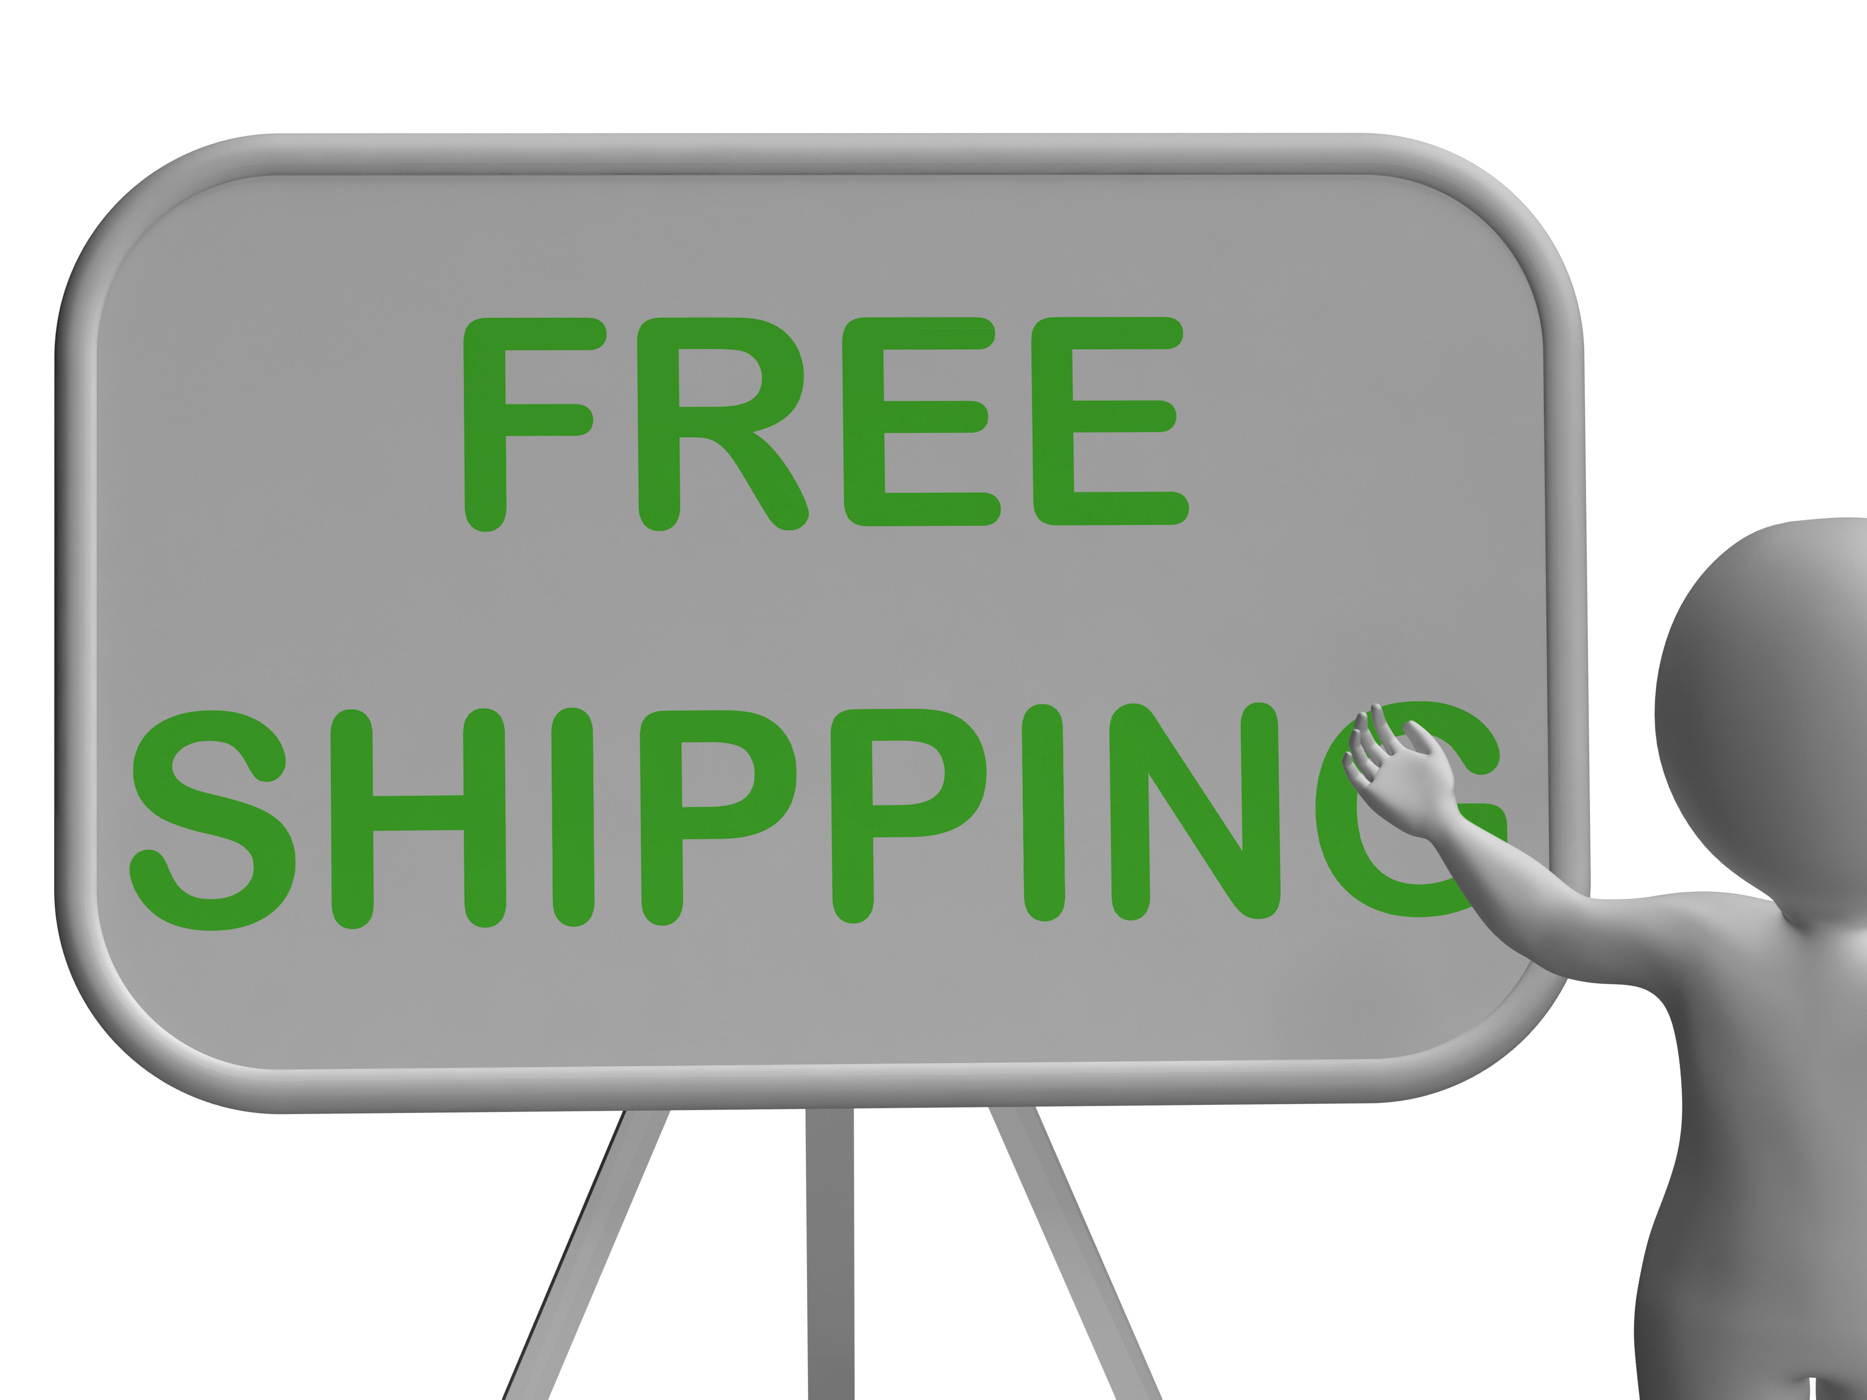 Free Shipping Whiteboard Shows Item Shipped At No Cost, Postageincluded, Postageandpackin, Post, Product, HQ Photo